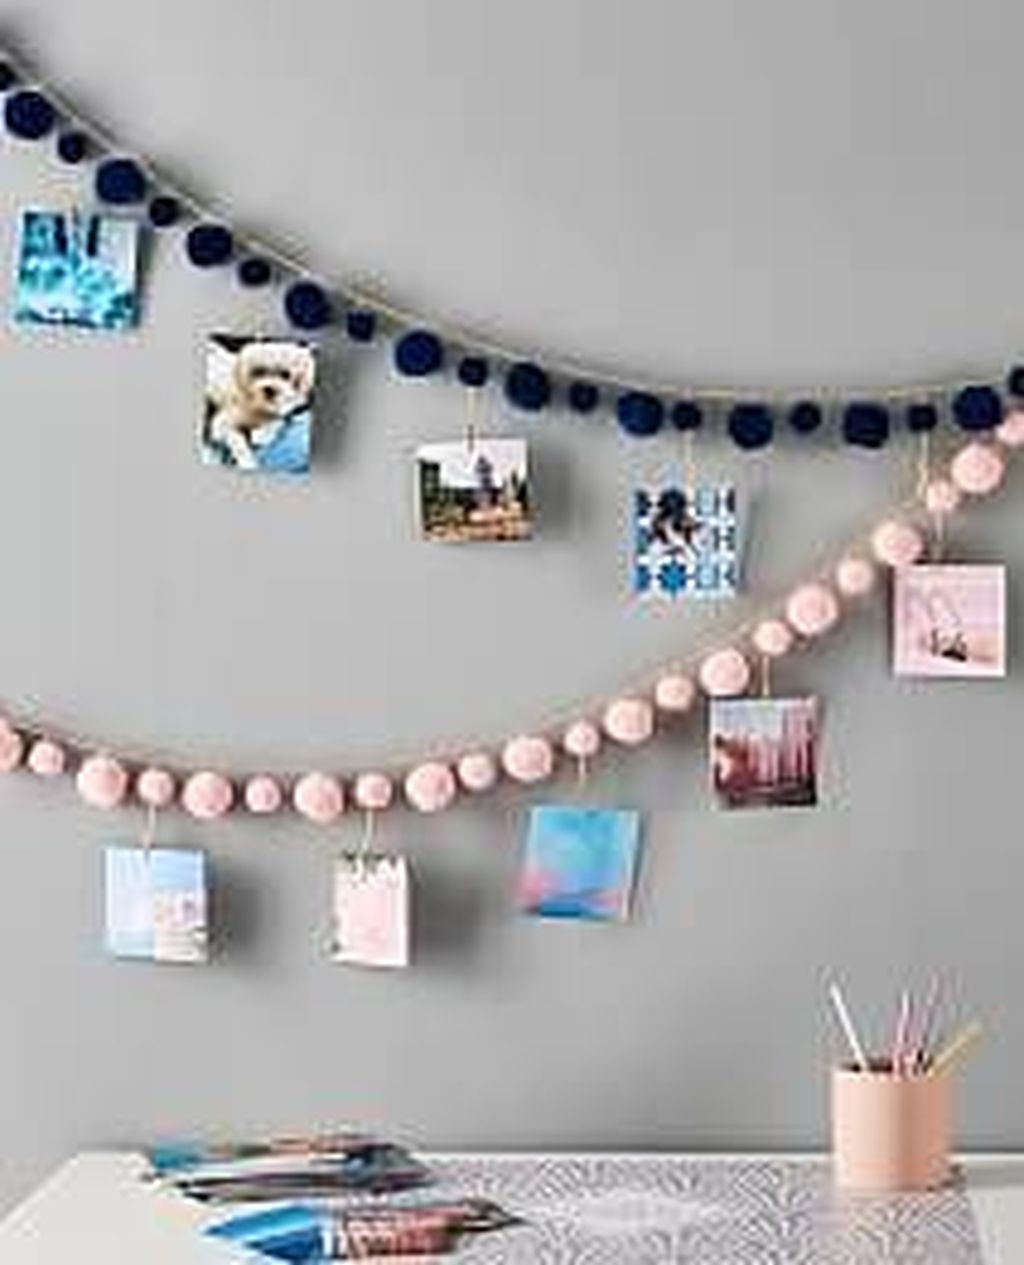 43 Delightful Teen Photo Crafts Design Ideas To Try Asap